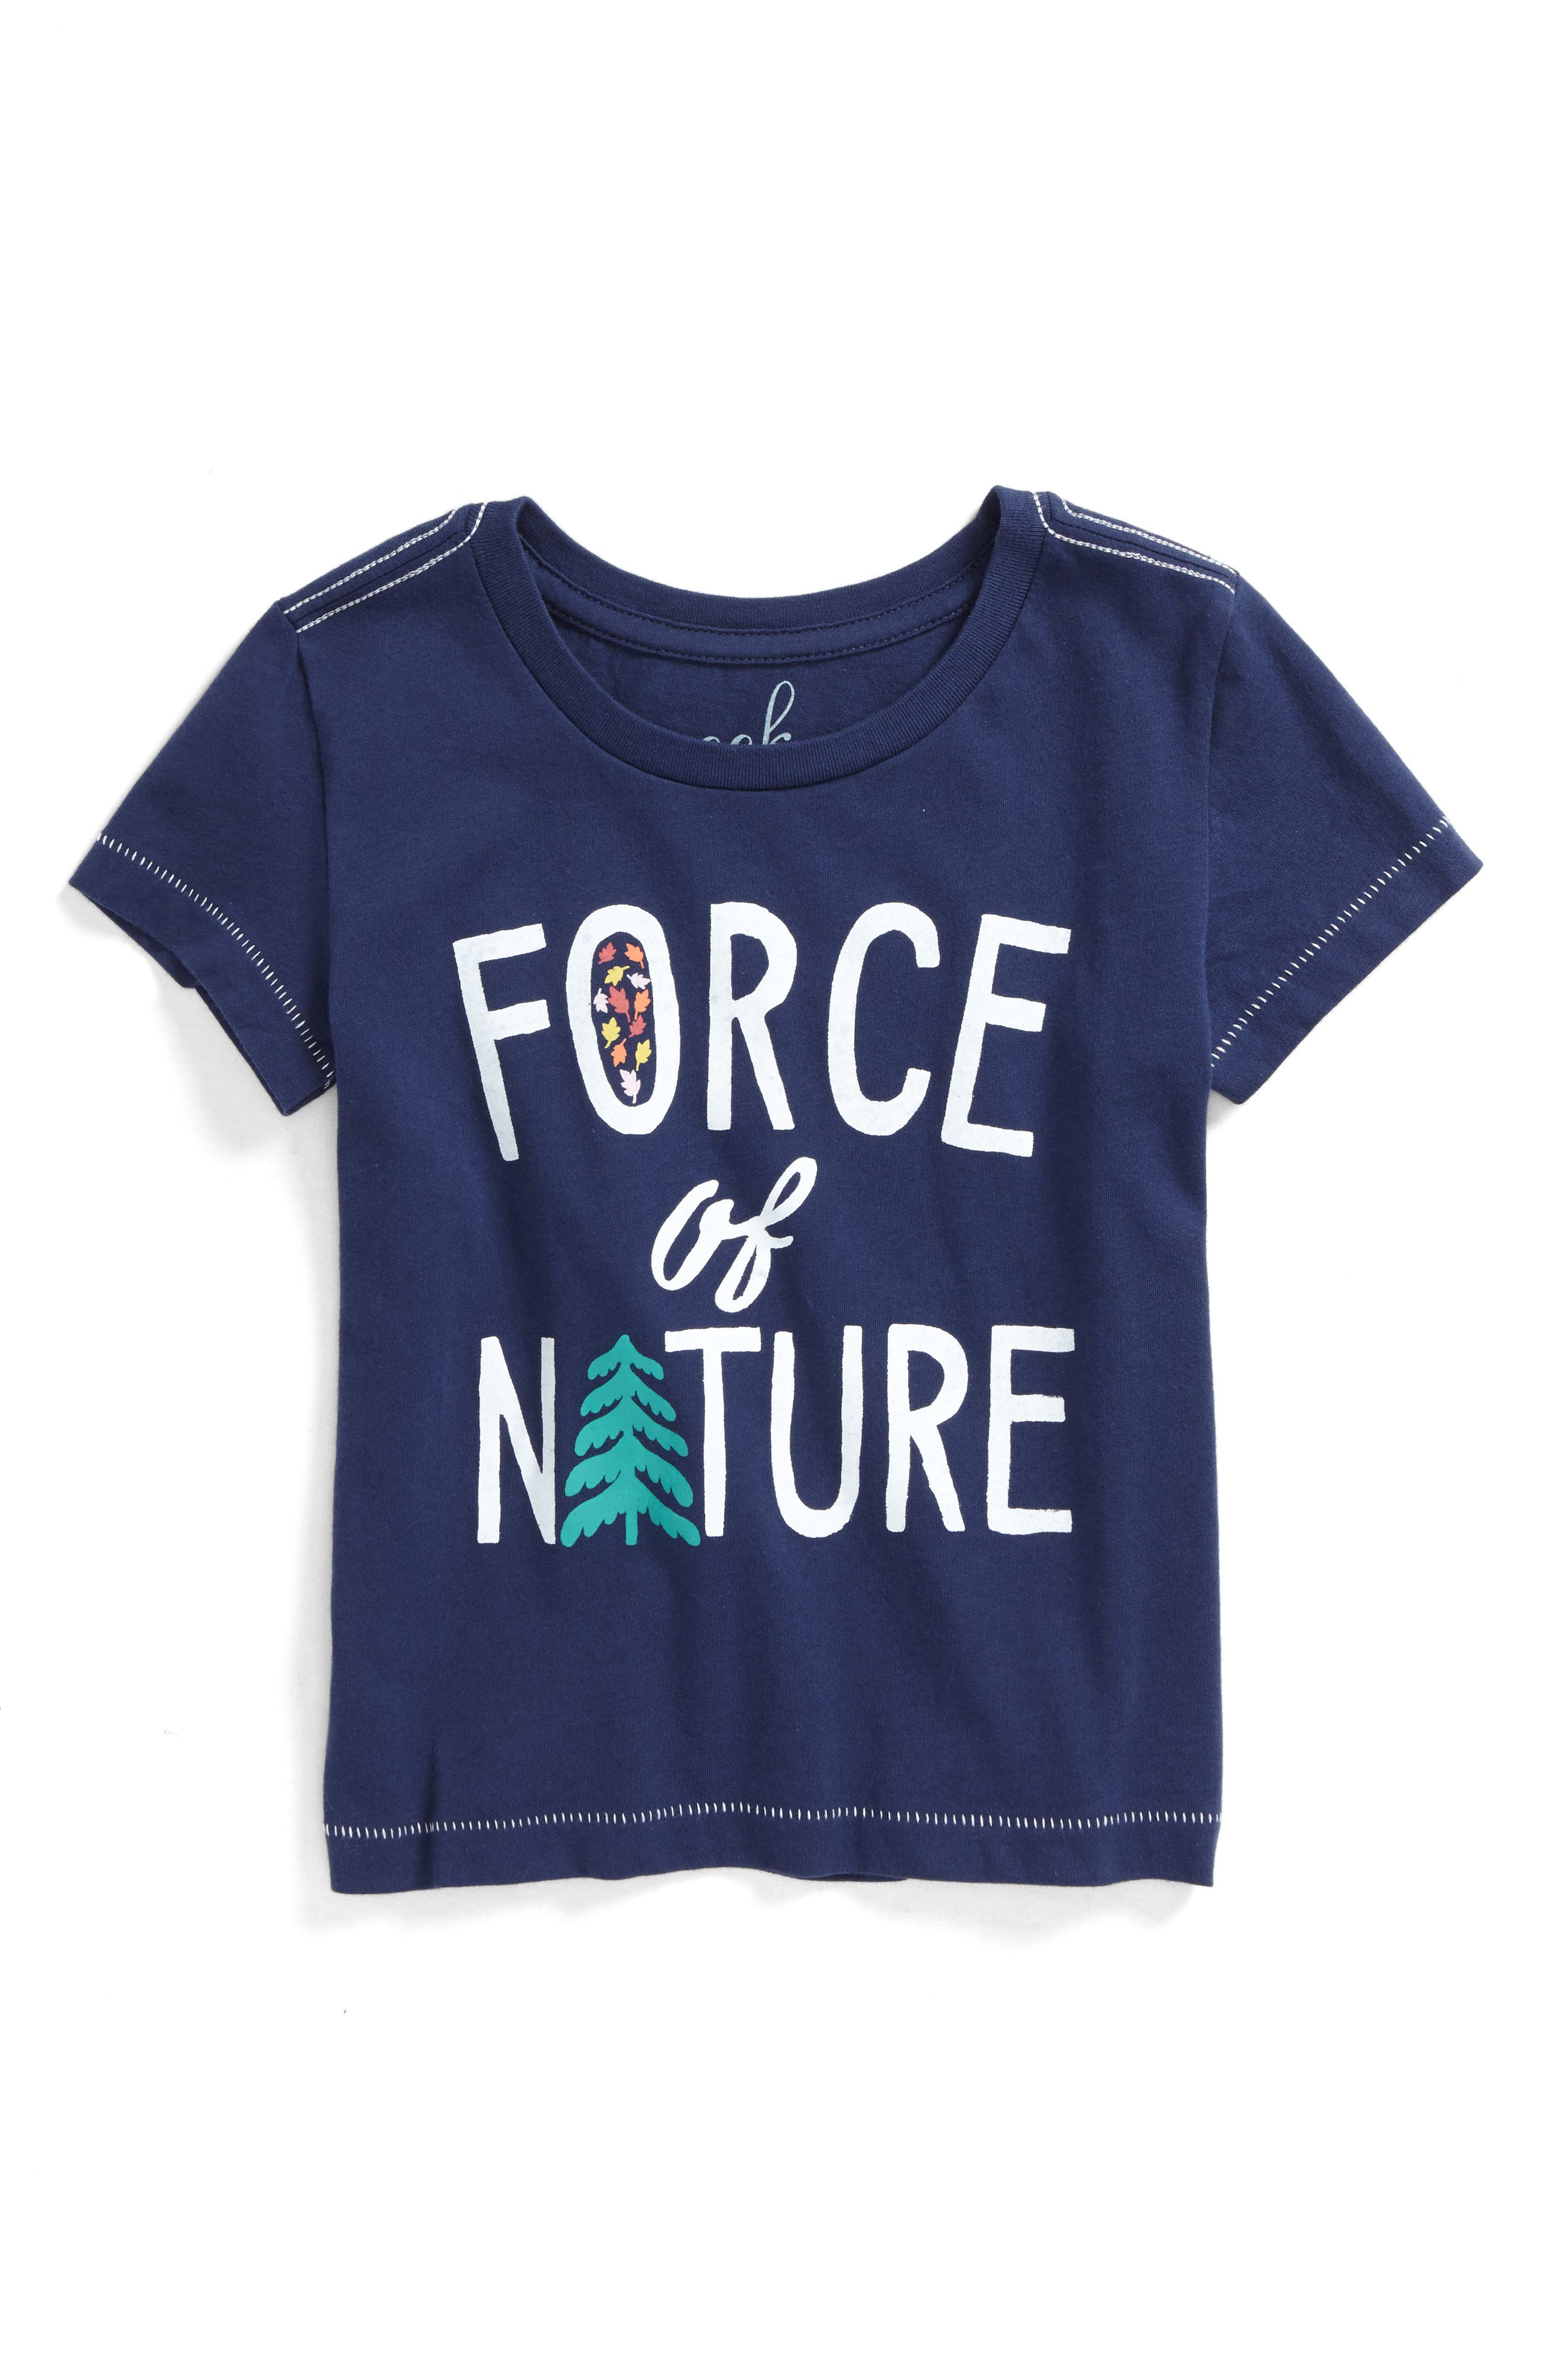 Force of Nature Graphic Tee,                         Main,                         color, 410